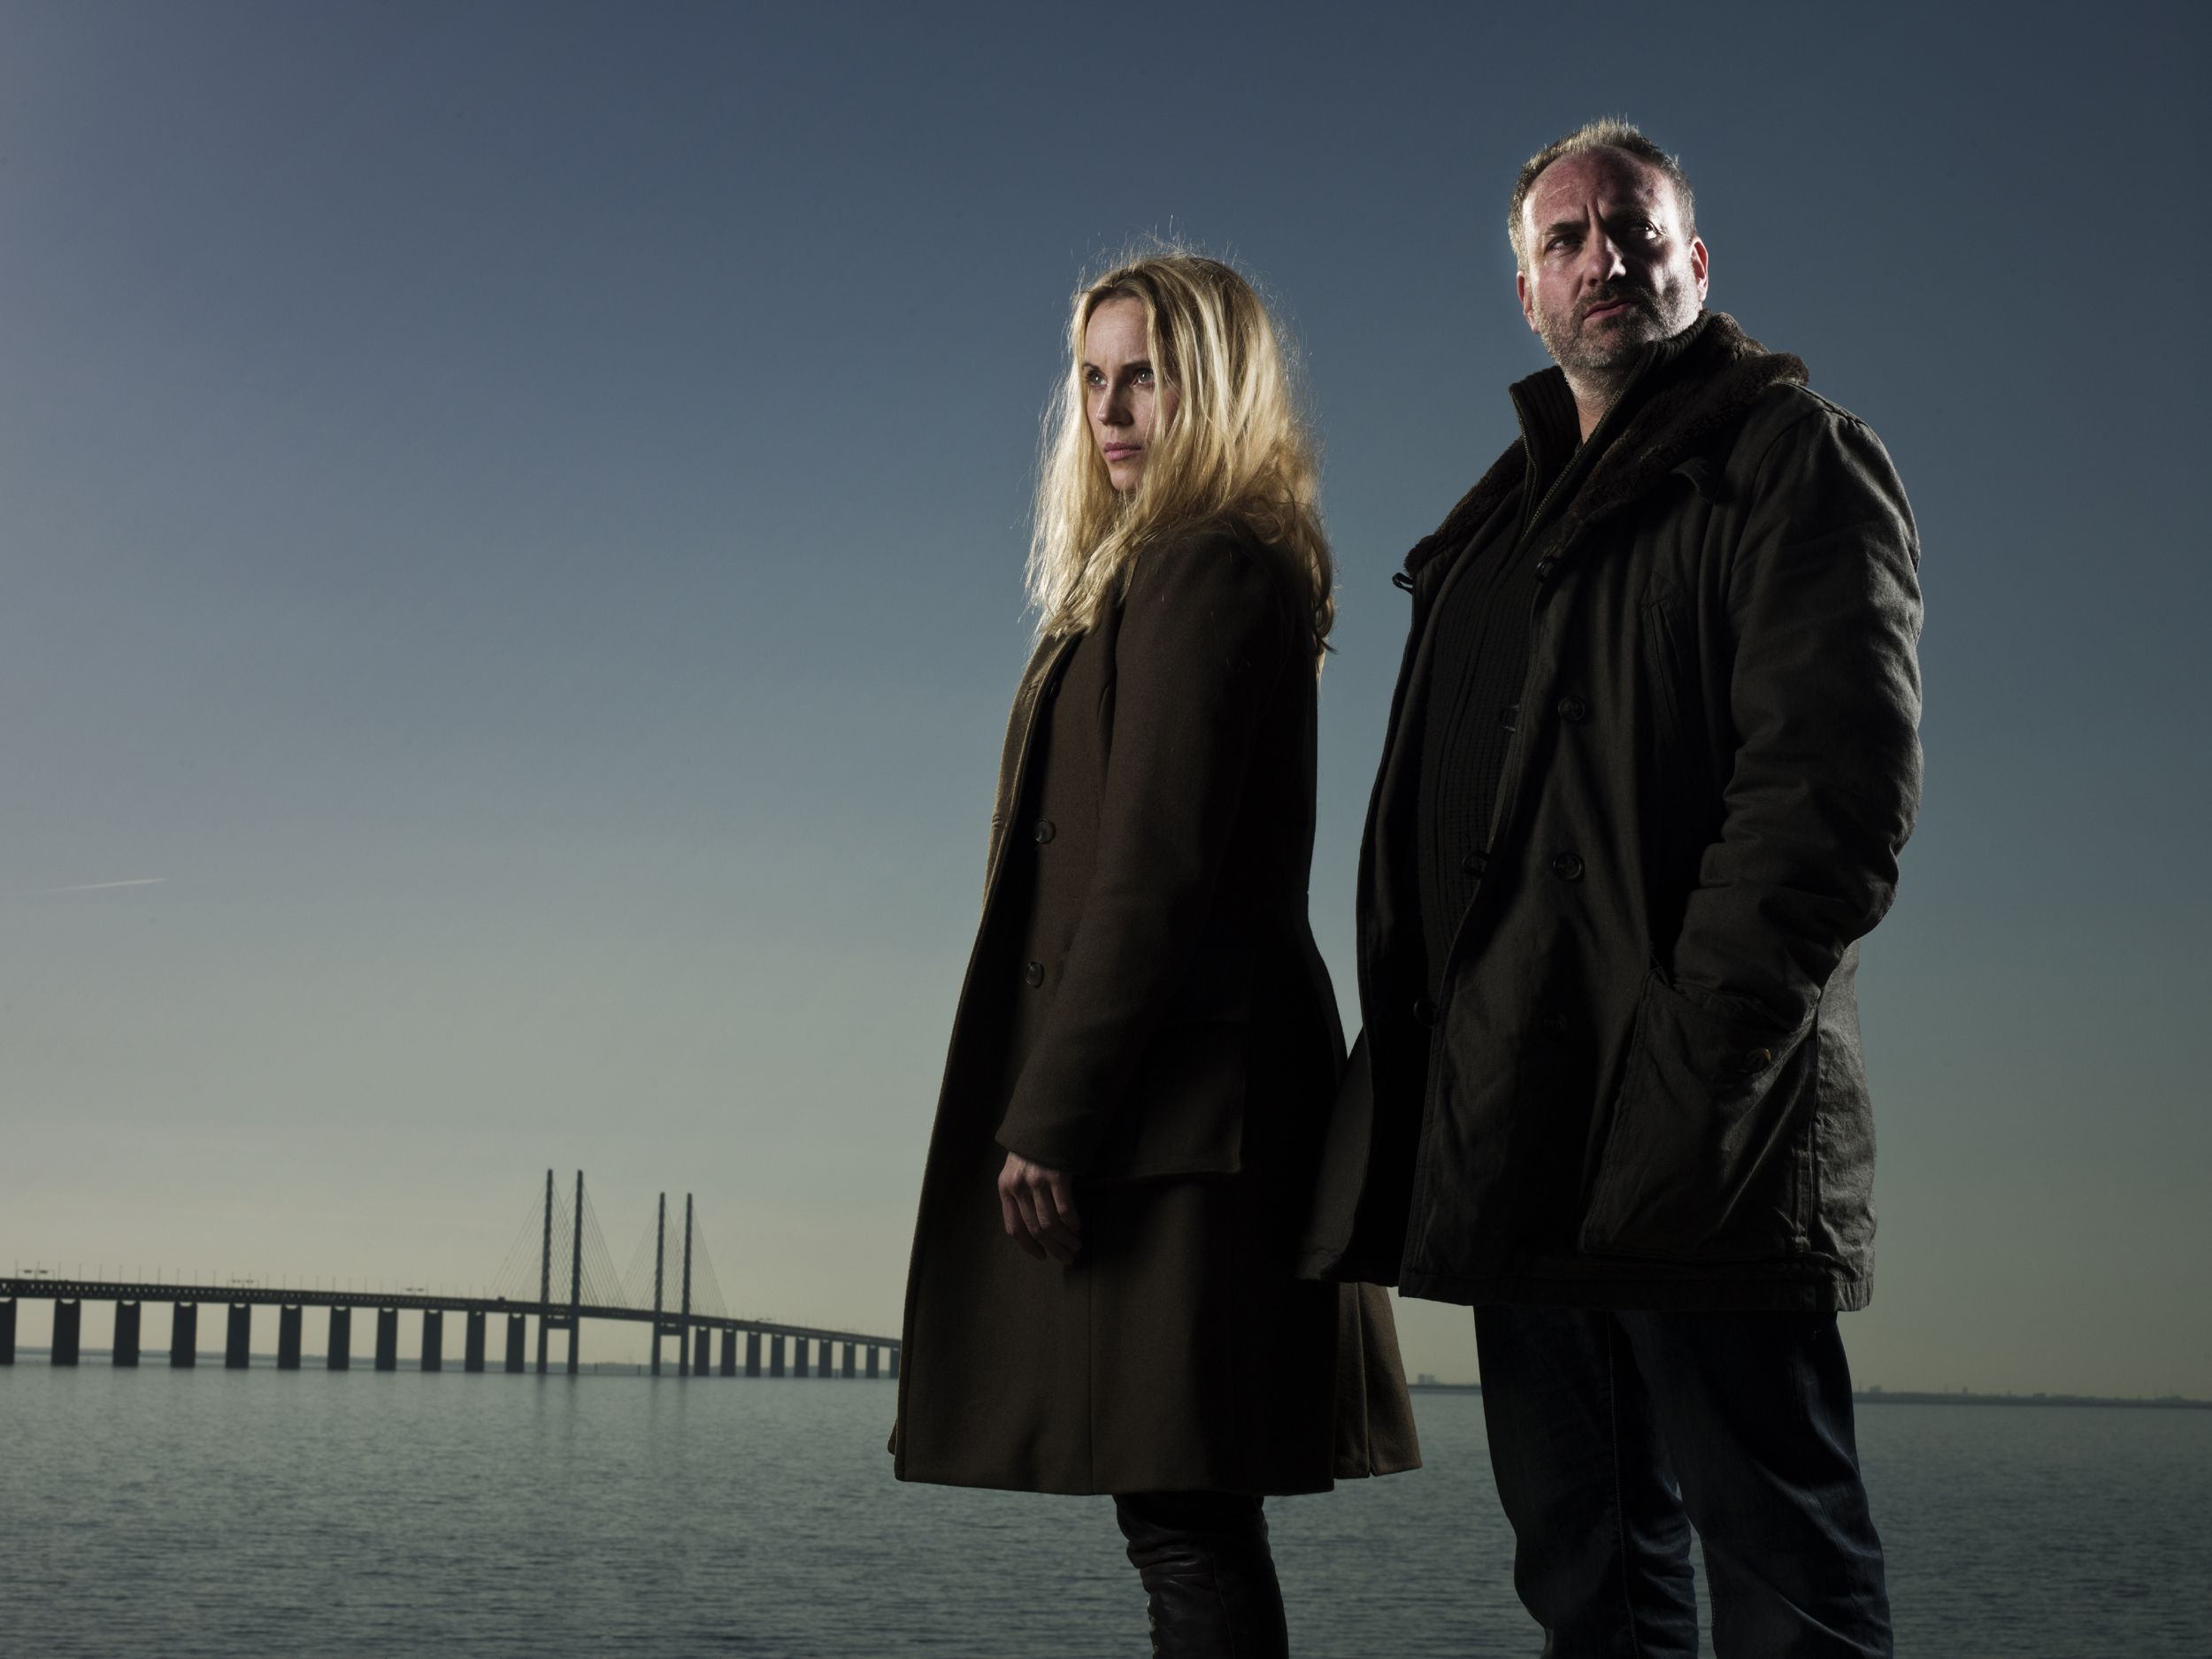 The Bridge Danish Tv Series Love It The Bridge Tv Show The Bridge Tv Lost In Translation